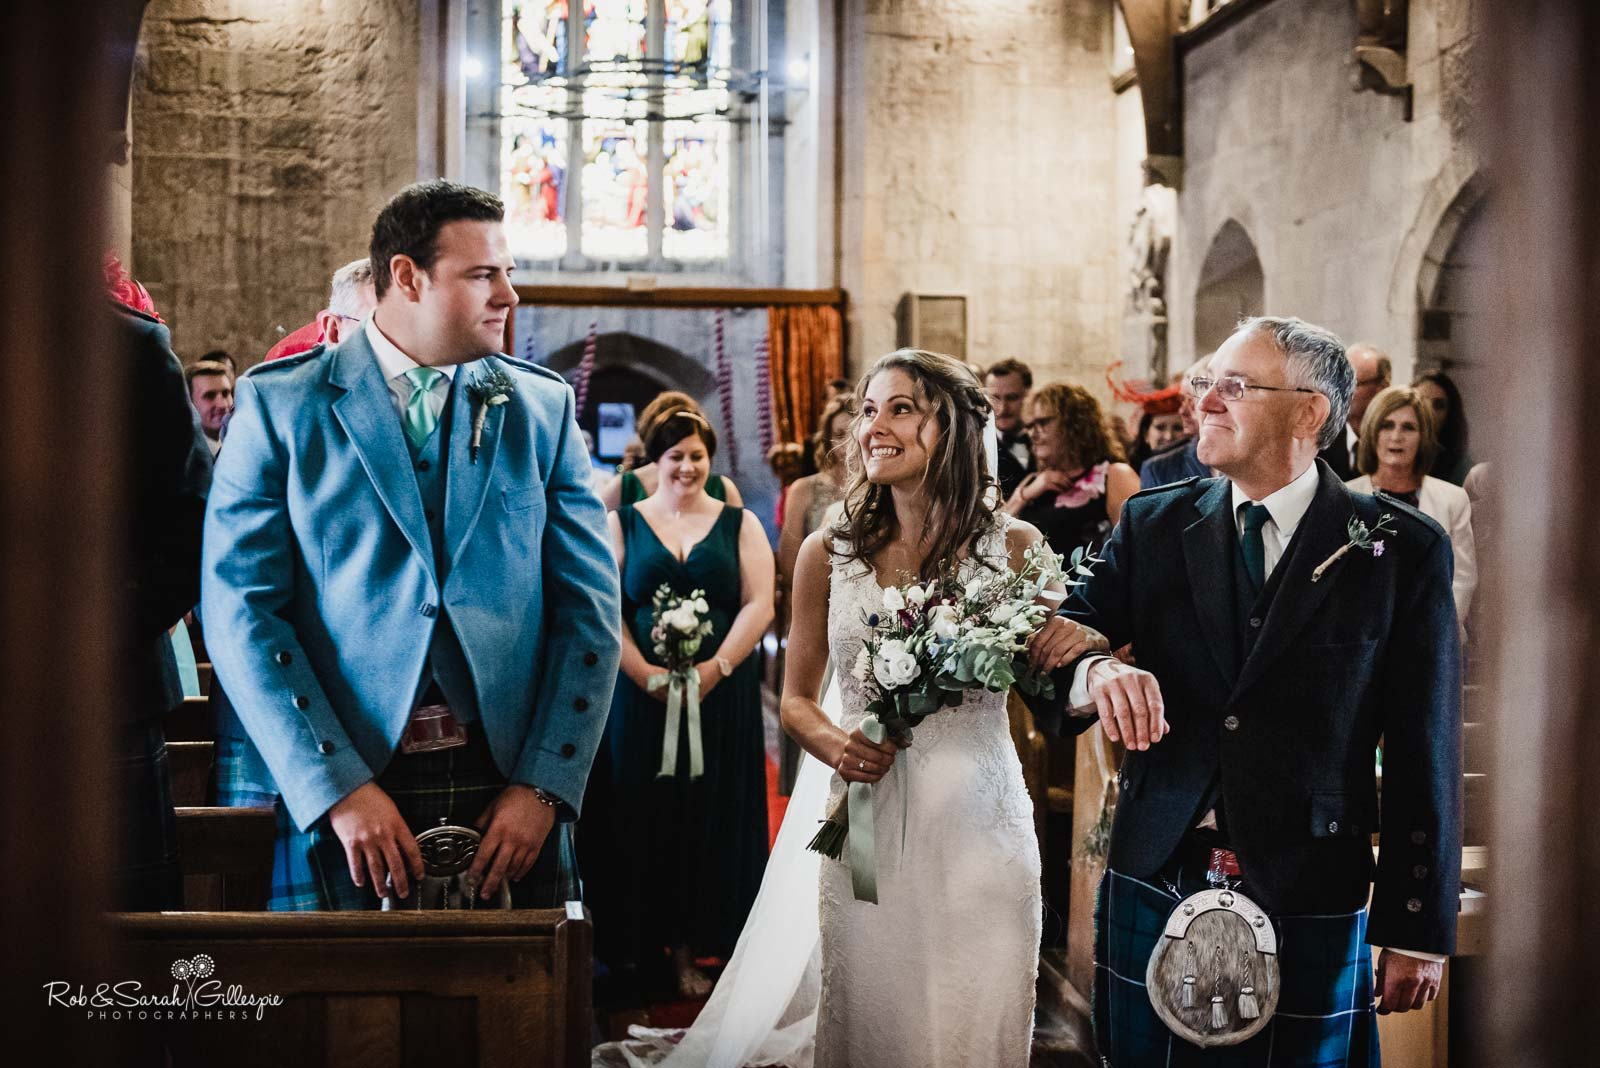 Bride and groom smiling at each other at St Giles church Packwood